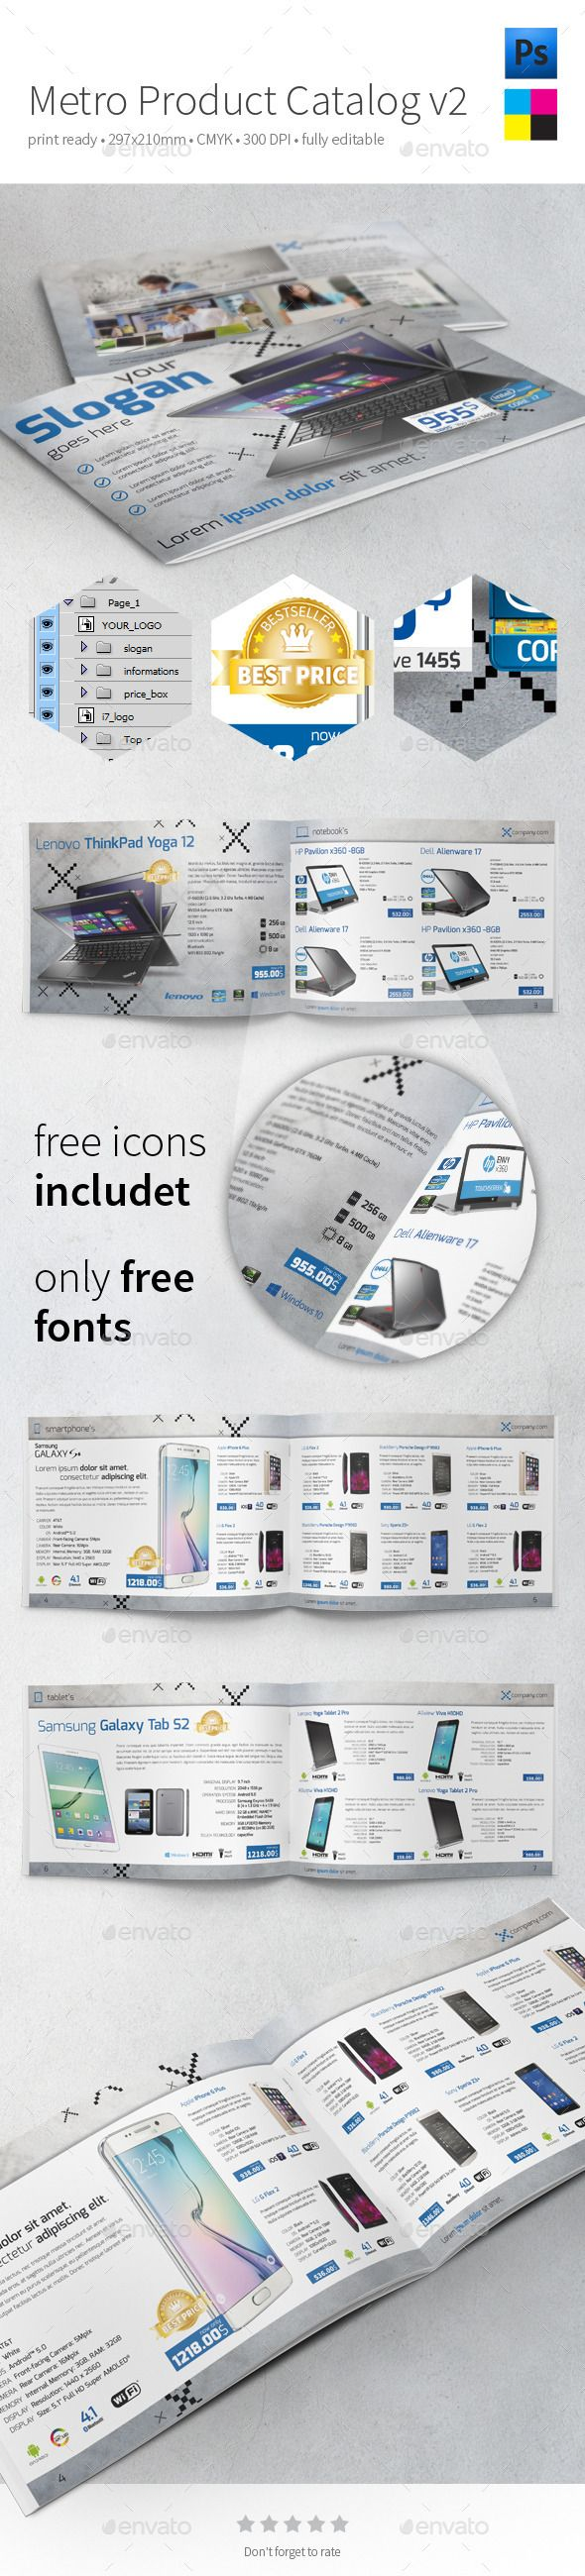 Metro Product Catalog v2 by buttonpl Clean, metro style, A4 product catalogue. FEATURES print size: 297210 mm 300 dpi file format: psd only FREE font used: Exo (more